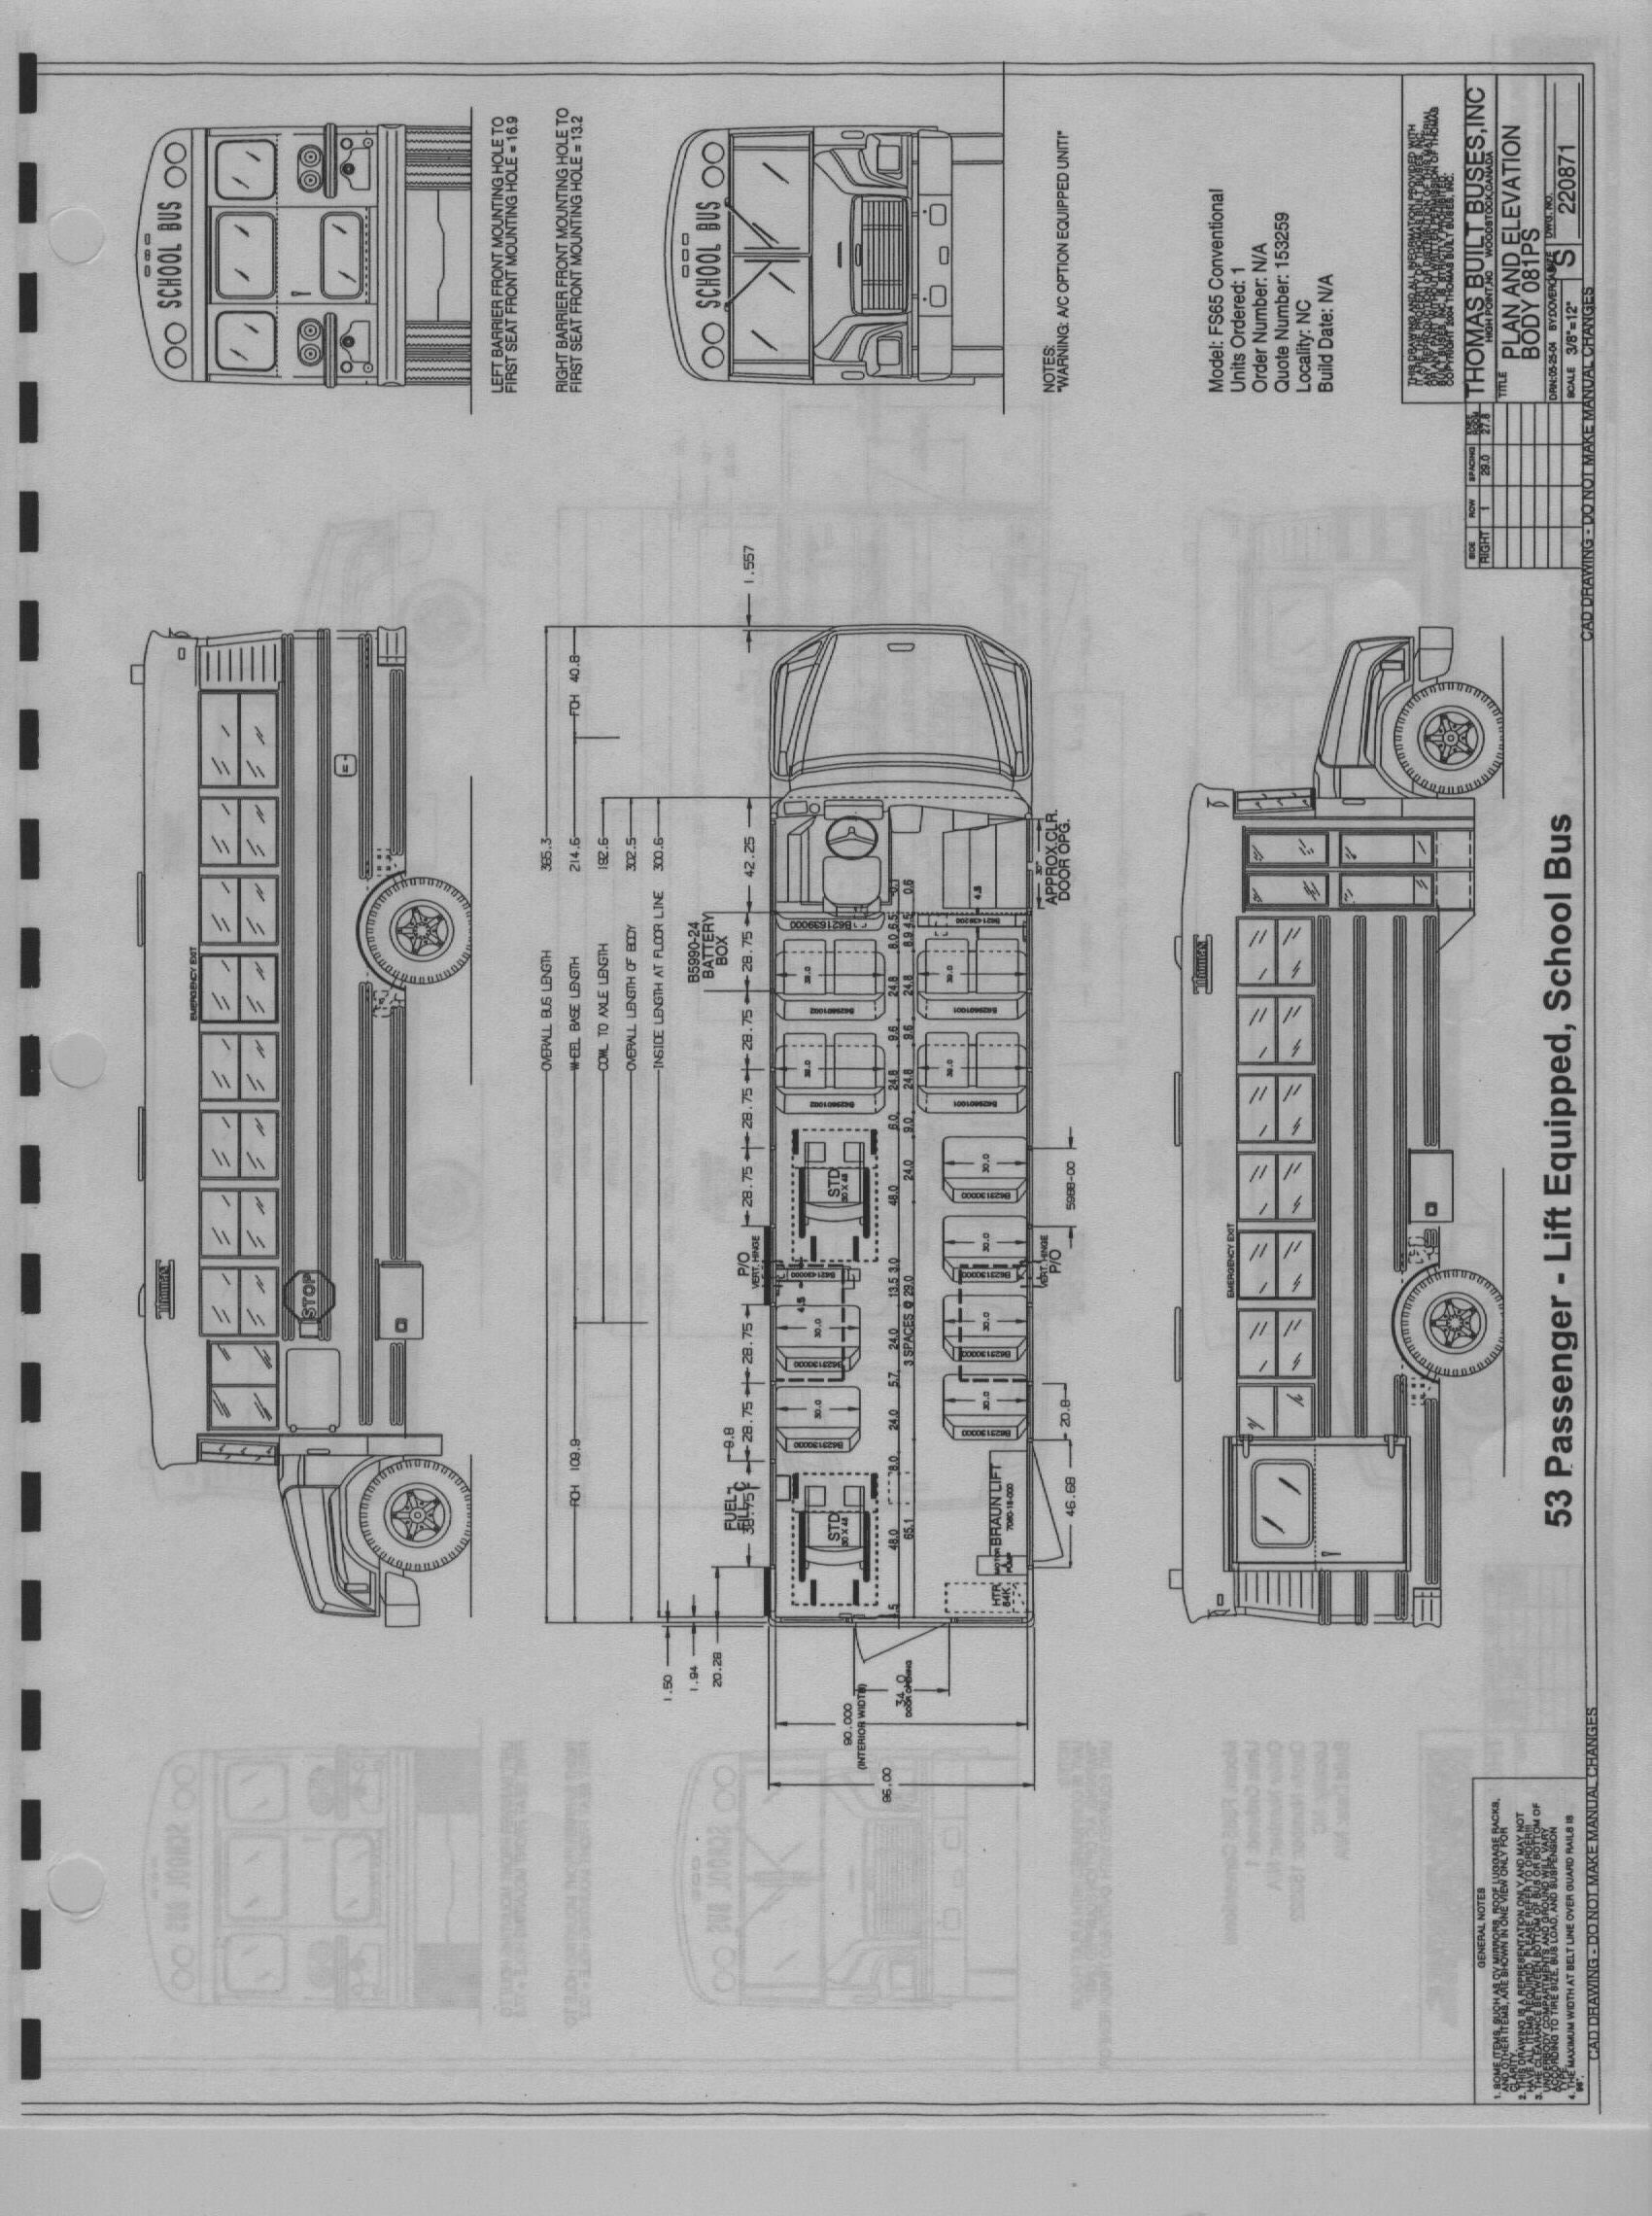 Thomas Built Buses Wiring Diagram